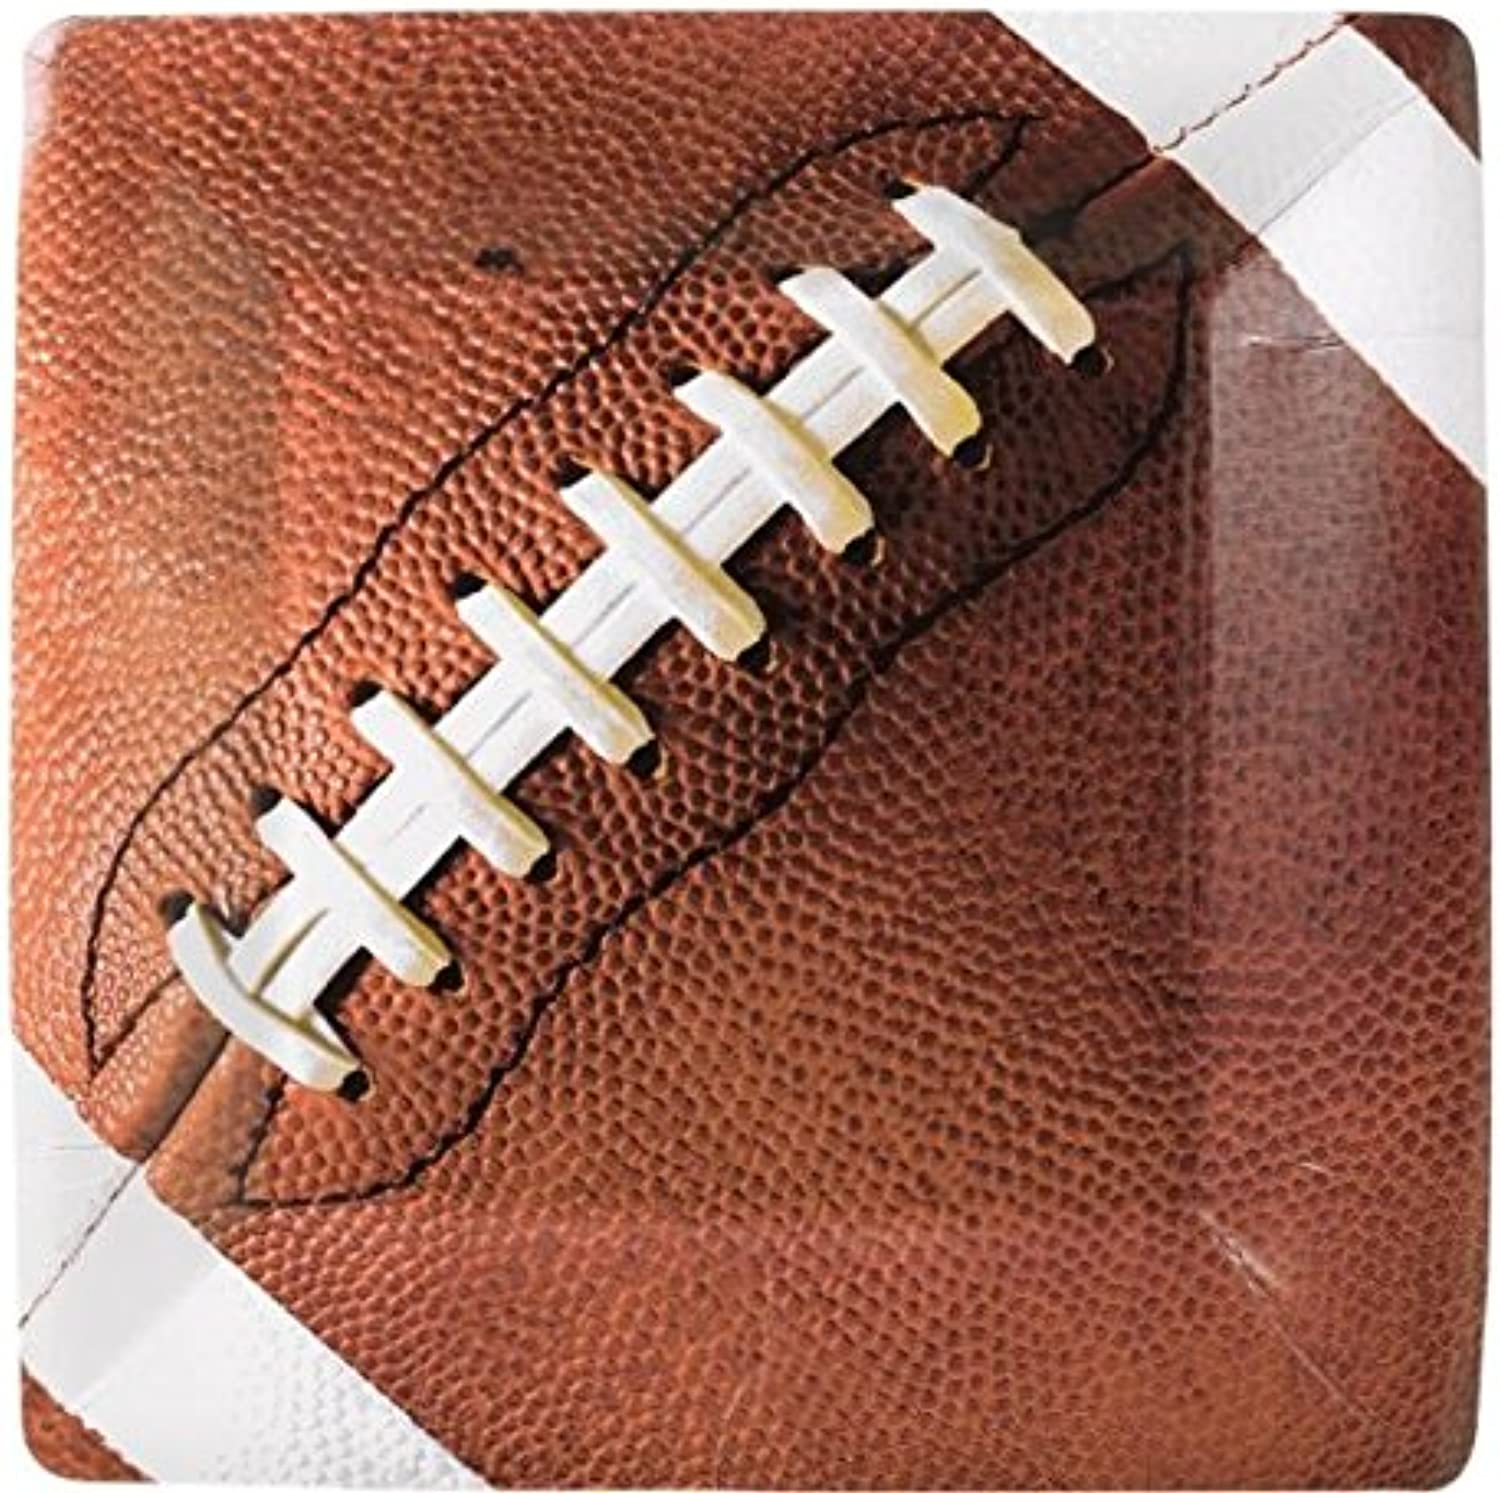 Amscan Football Fan Birthday Party Square Dessert Plates (8 Piece), Brown, 7.3 x 7.3